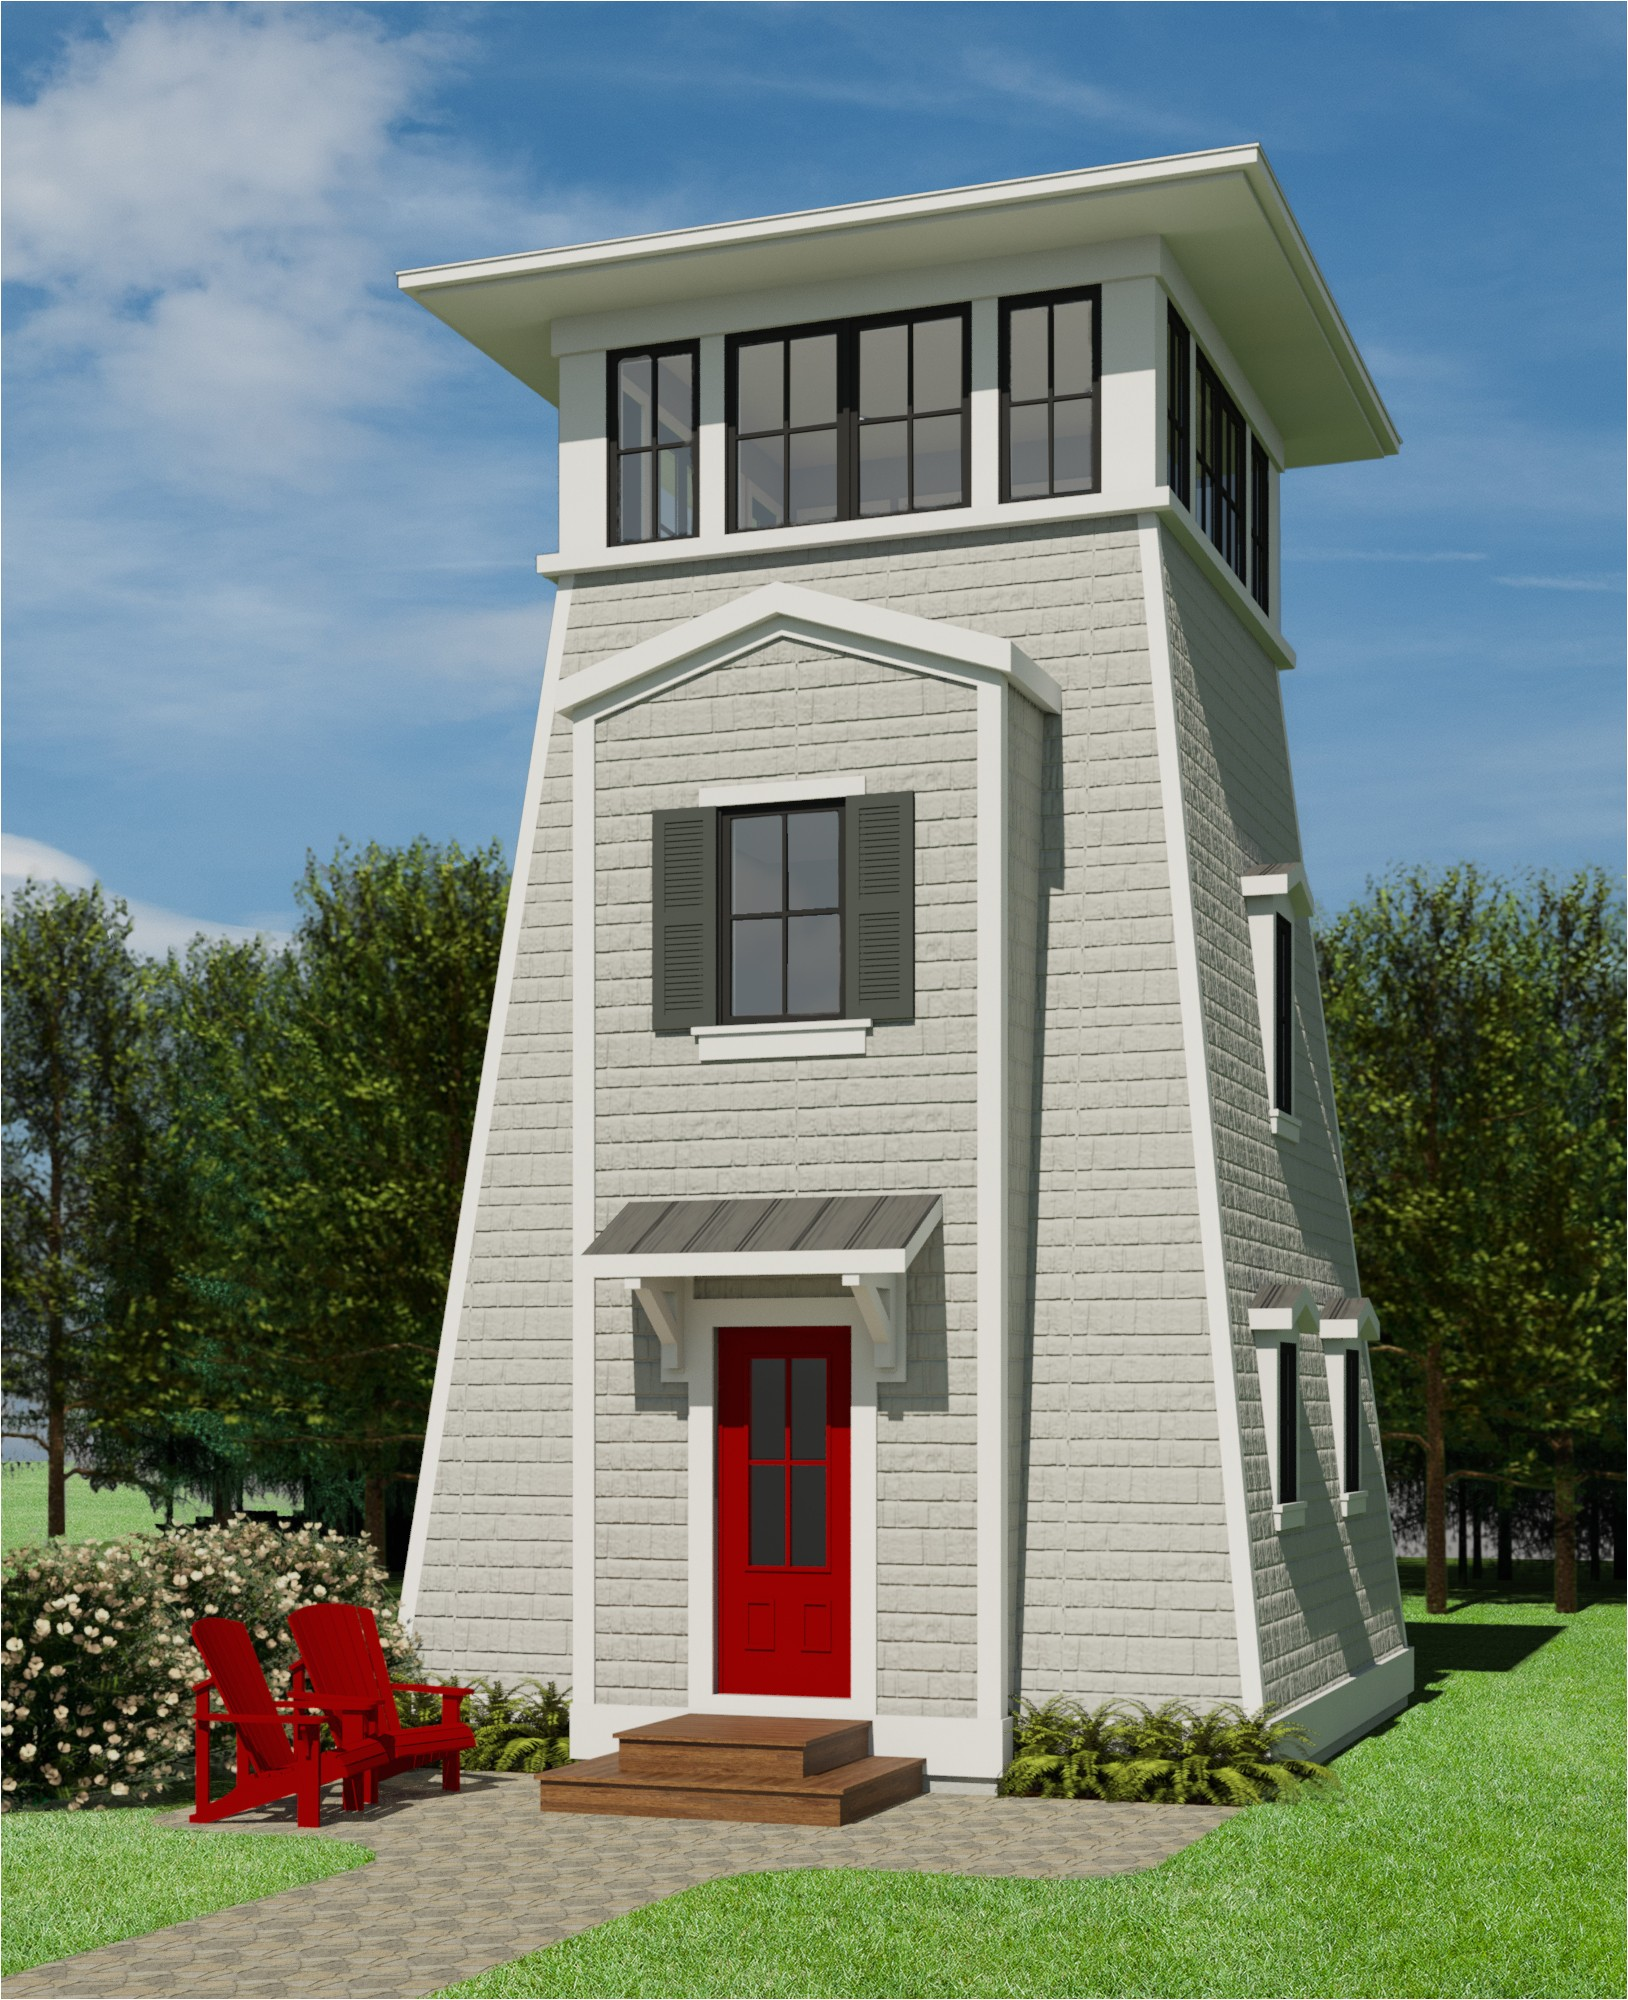 Robinson Home Plans Robinson Residential House Plans House Plans